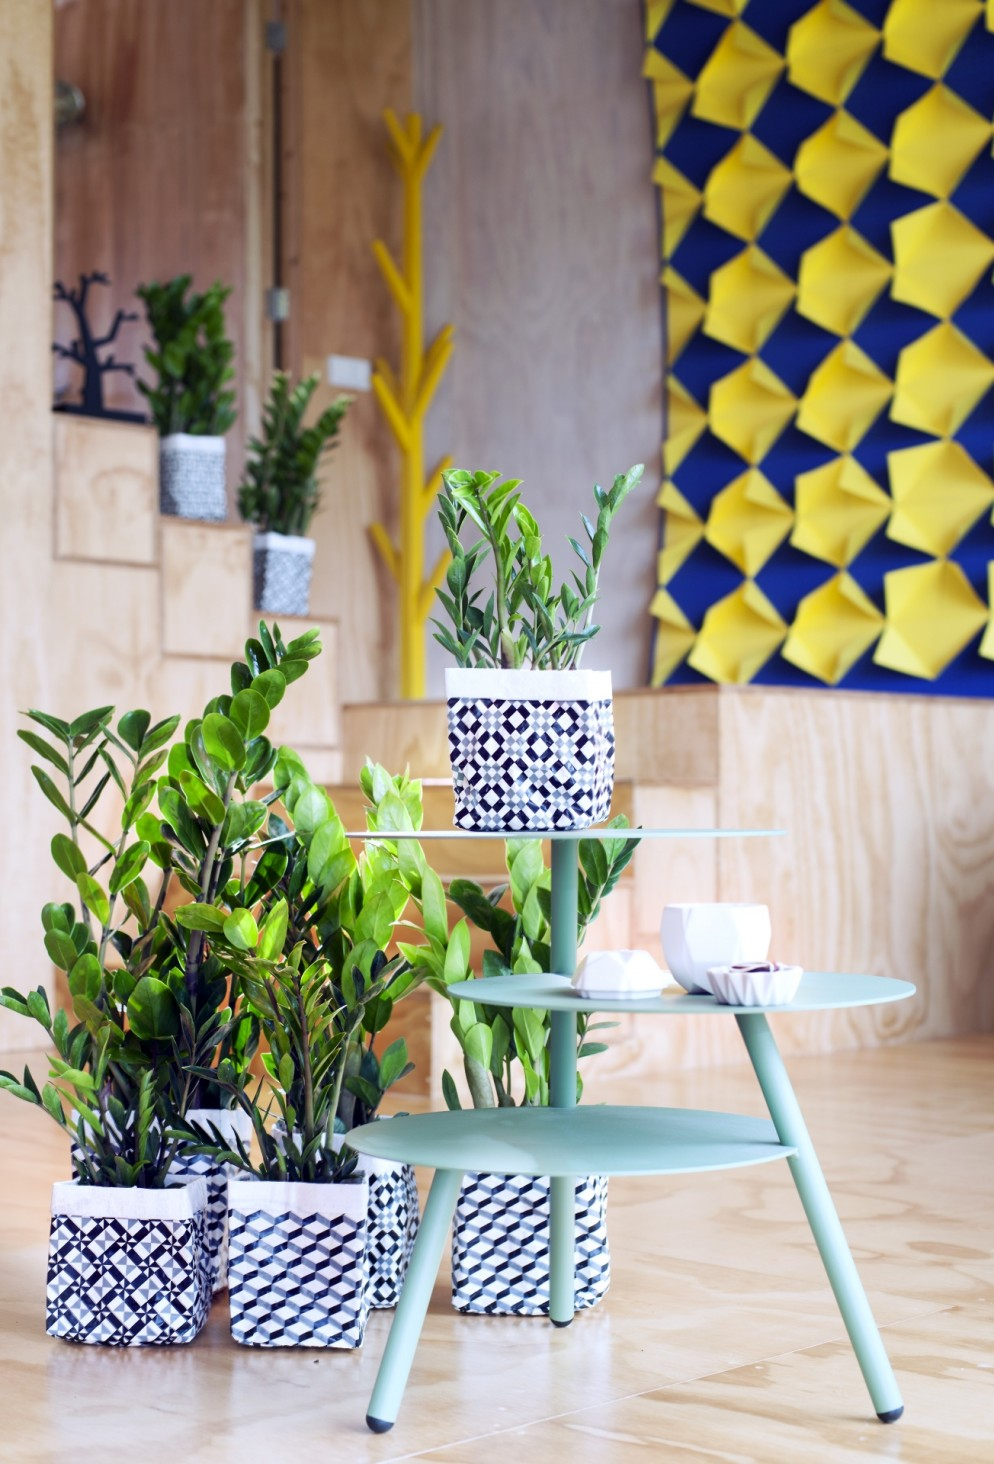 piante-resistenti-10.zamioculcas-planted-in-vases-of-geometric-pattern